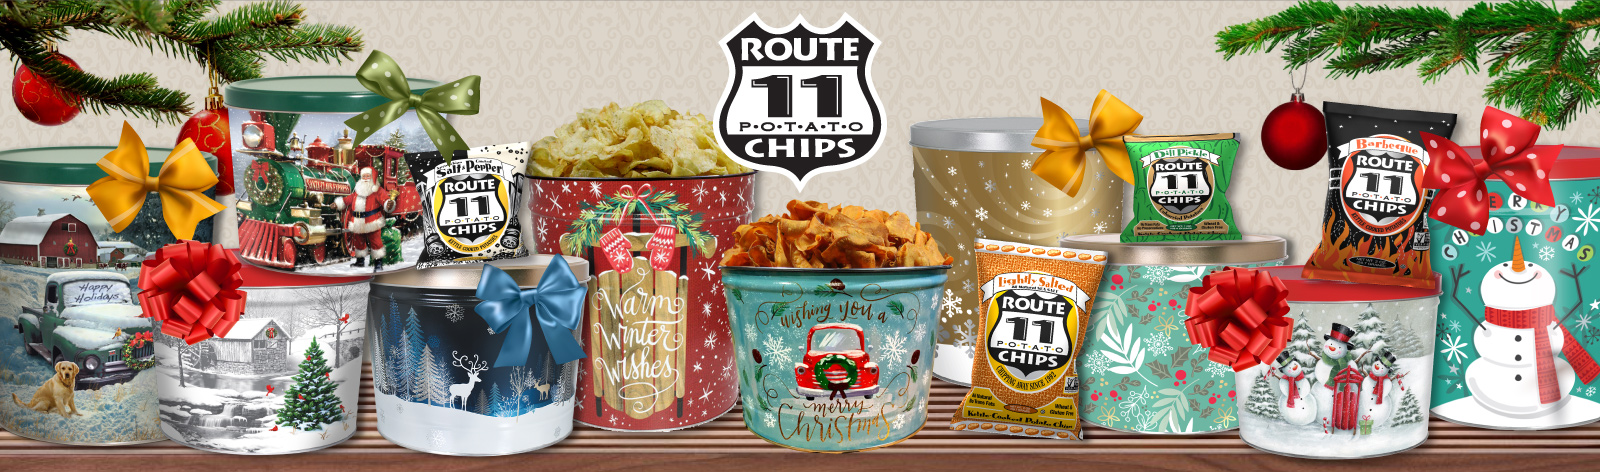 a selection of holiday gift tins filled with Route 11 Chips